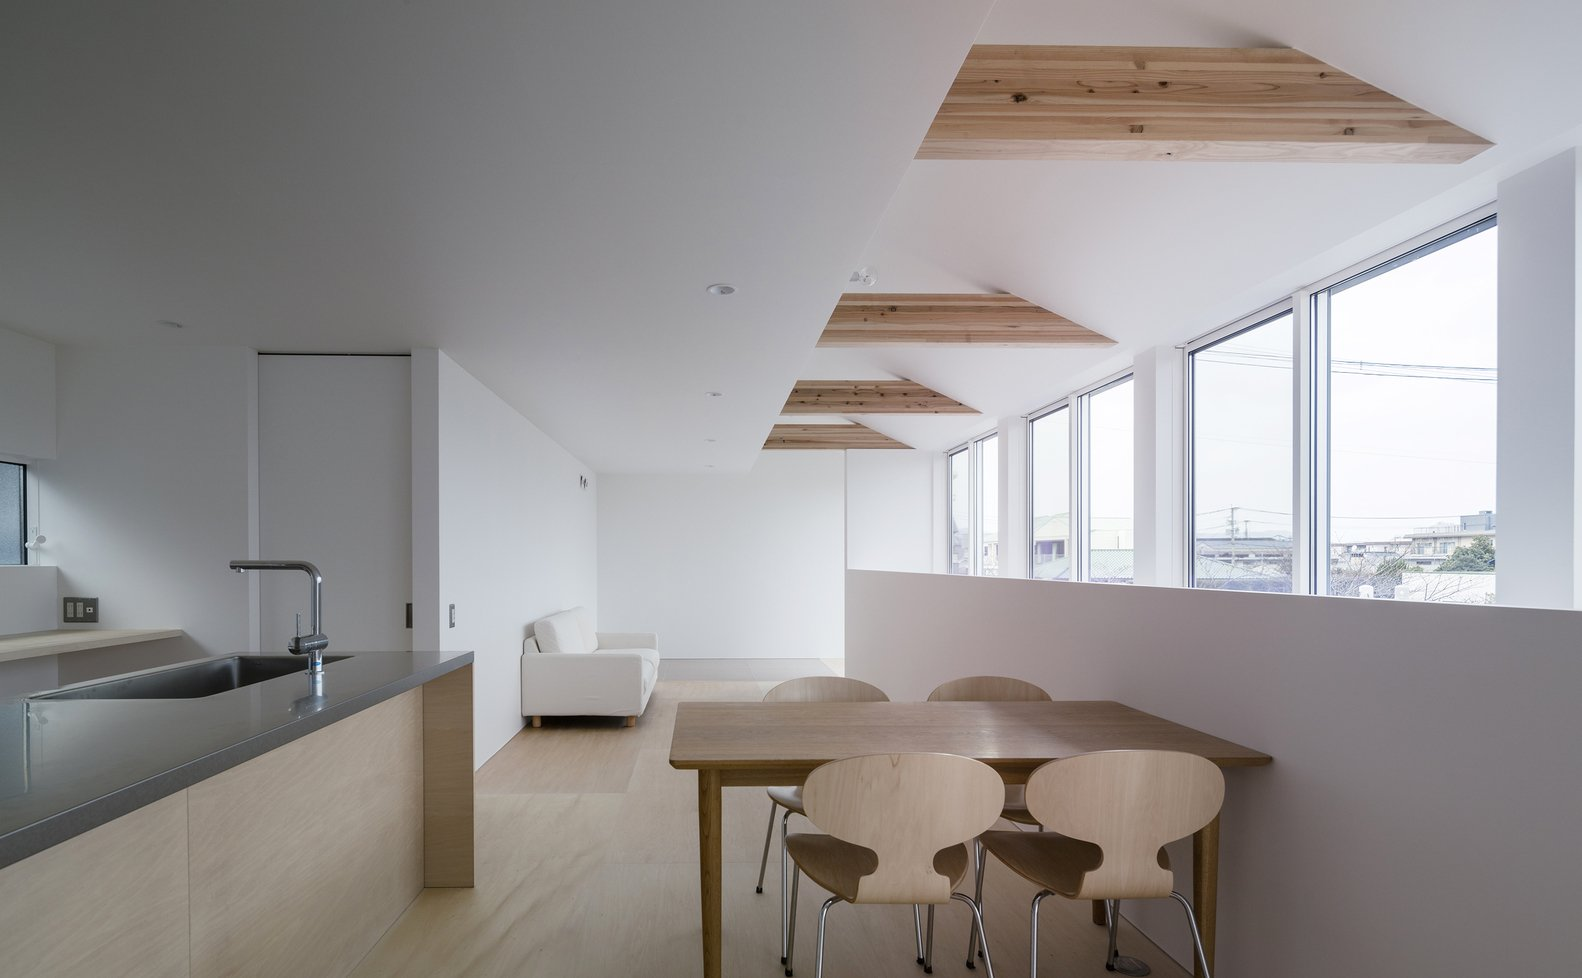 Photo 3 of 7 in House in Futako by Yabashi Architects & Associates